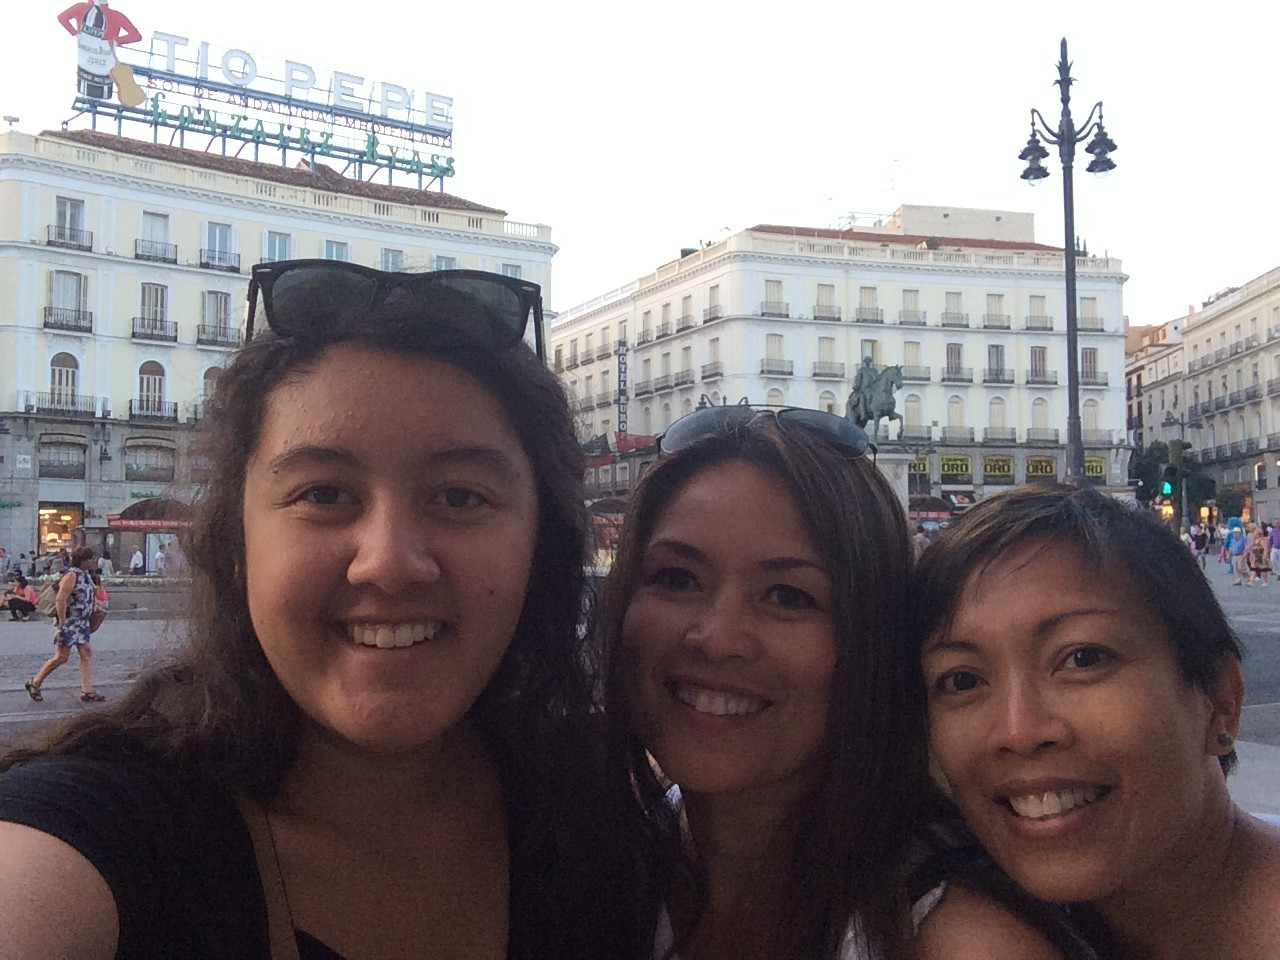 Last day in the heart of Madrid at Puerta del Sol(Spanish: Gate of the Sun). As always, in Selfie pose formation. Hasta luego!